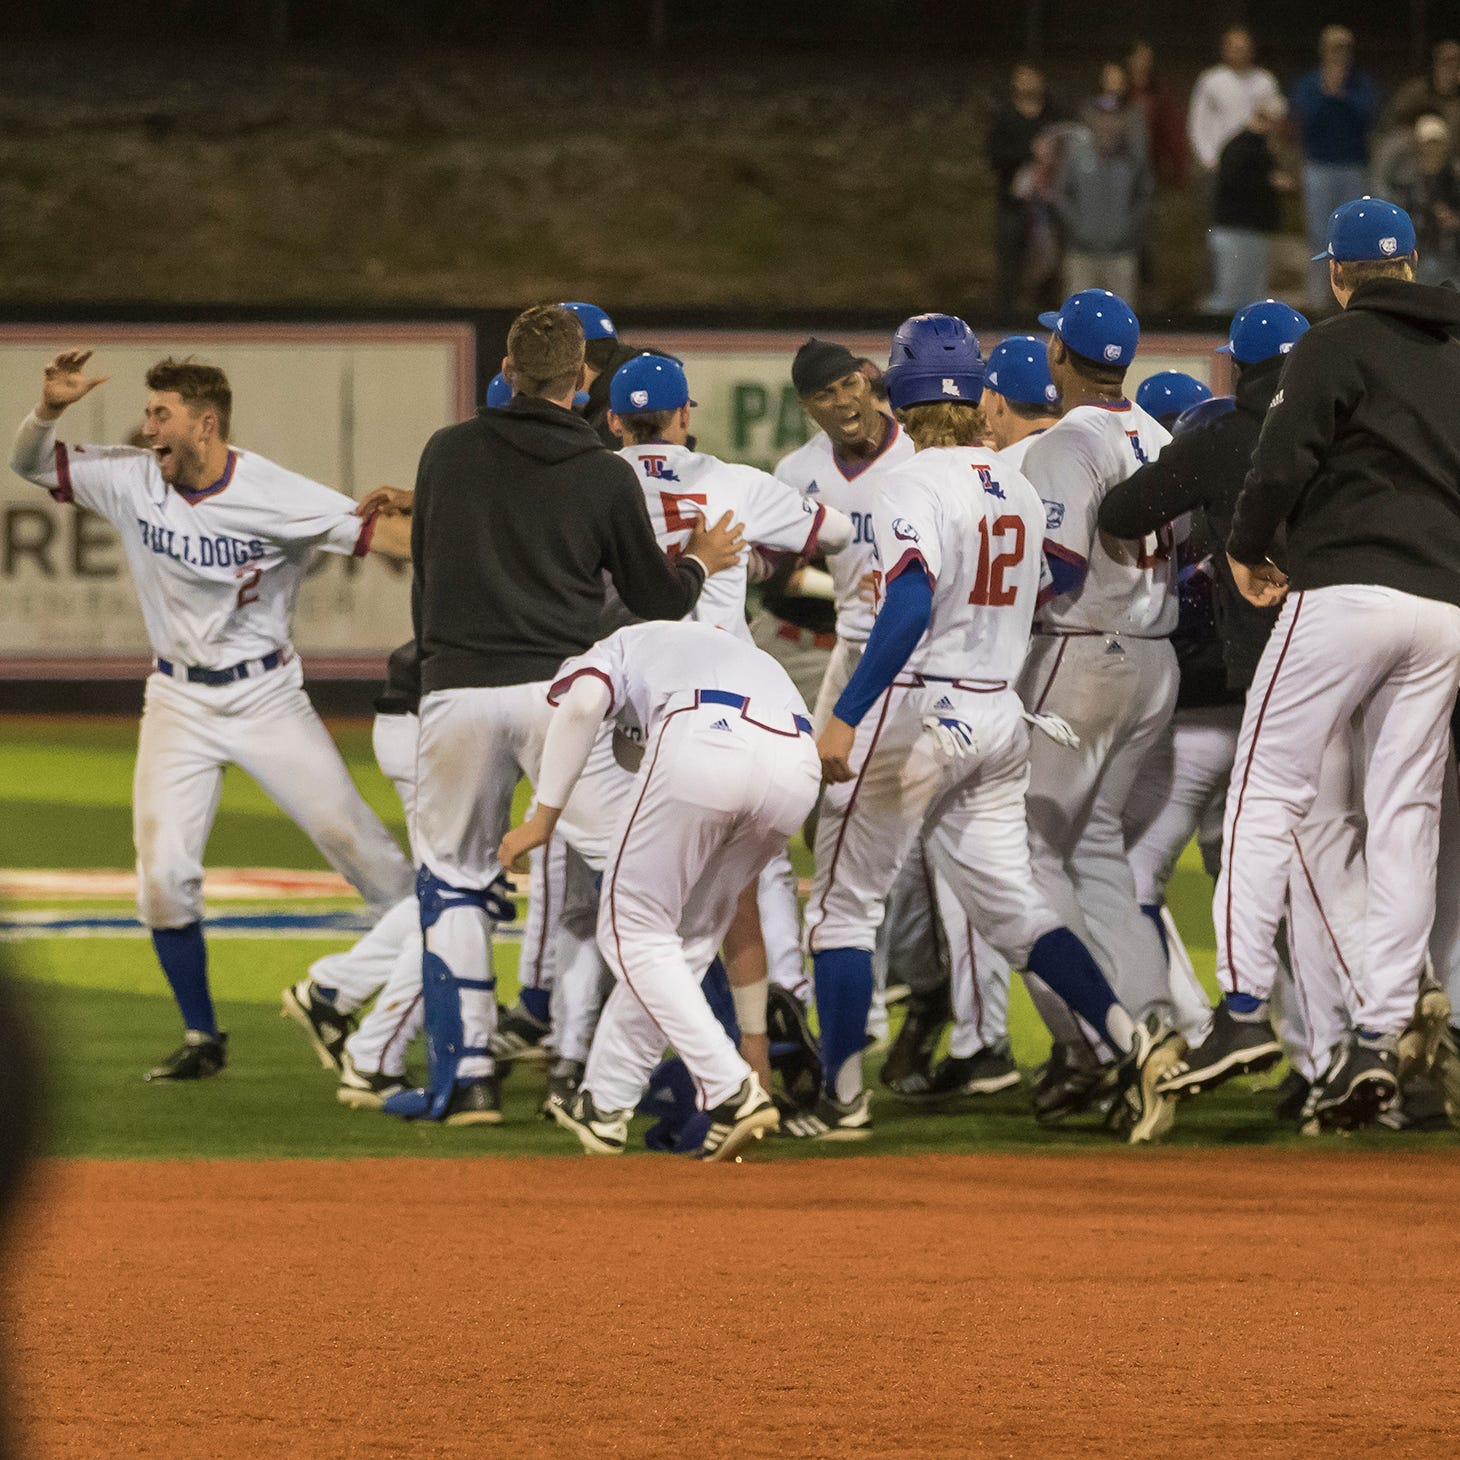 Extra nice: LA Tech walks off with win over rival Ragin' Cajuns in extras